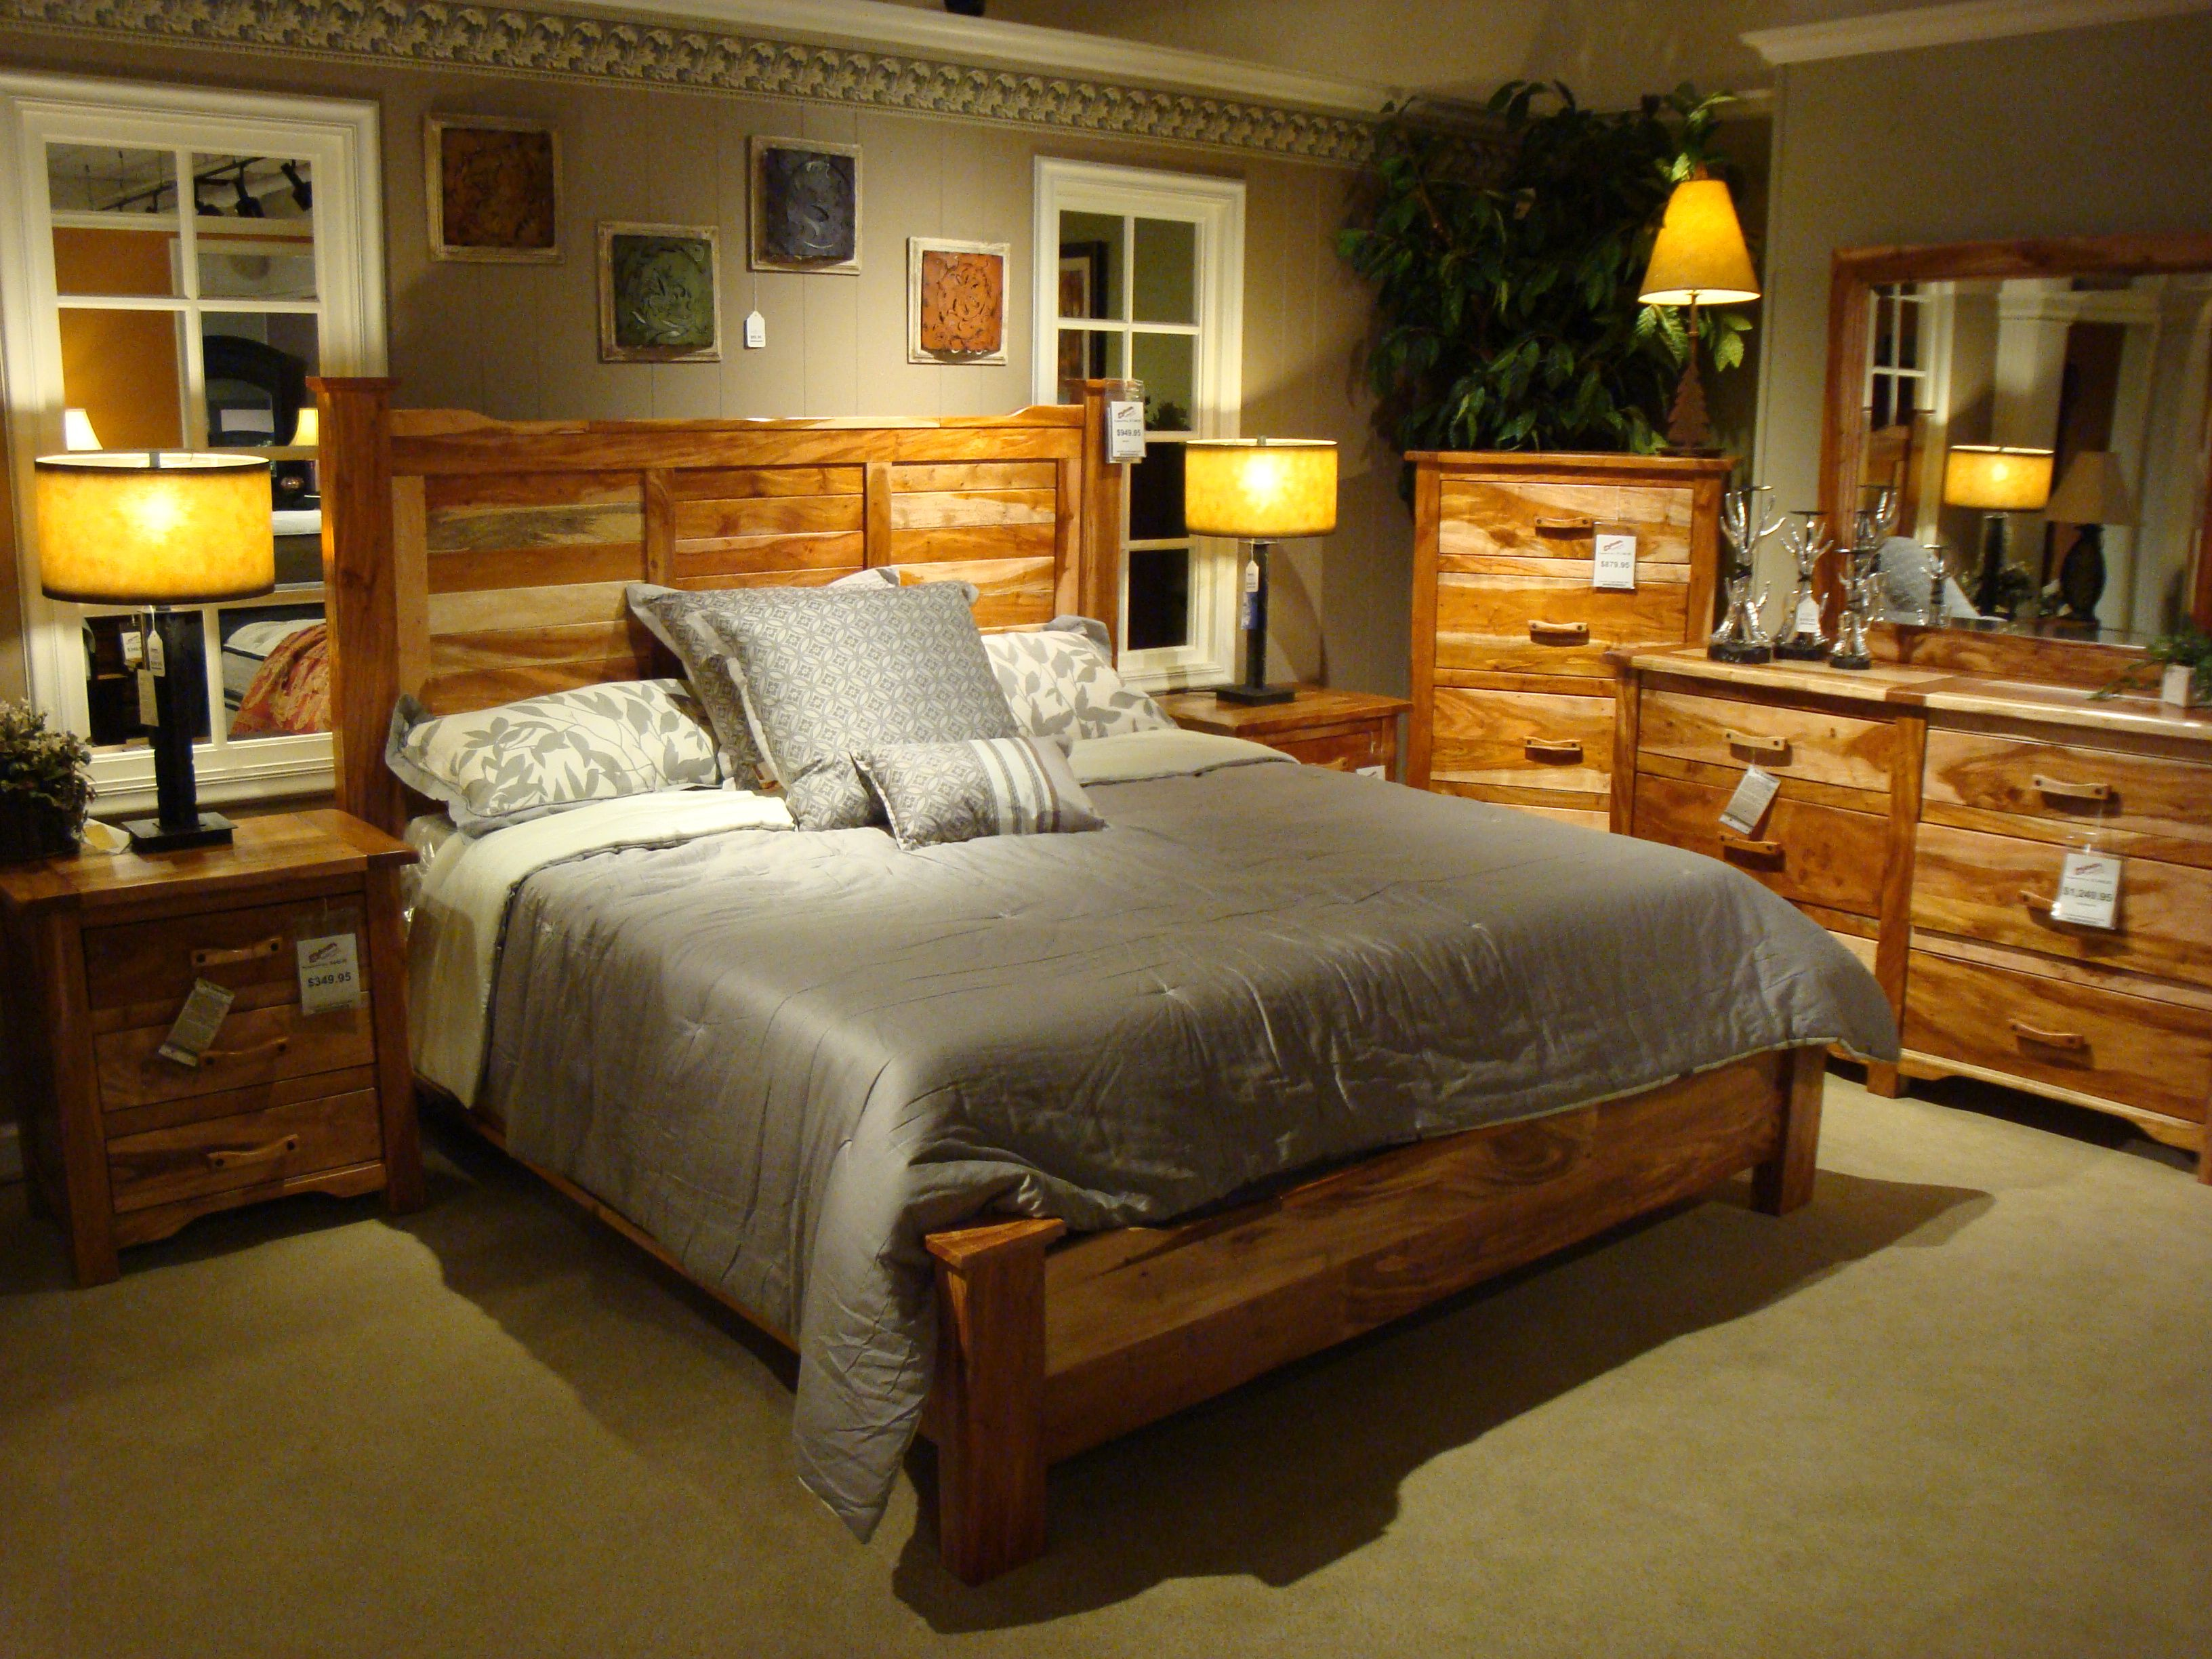 wood terrific with furniture anak amazing dressers design and solid traditional bedroom peach sets ideas set coral for